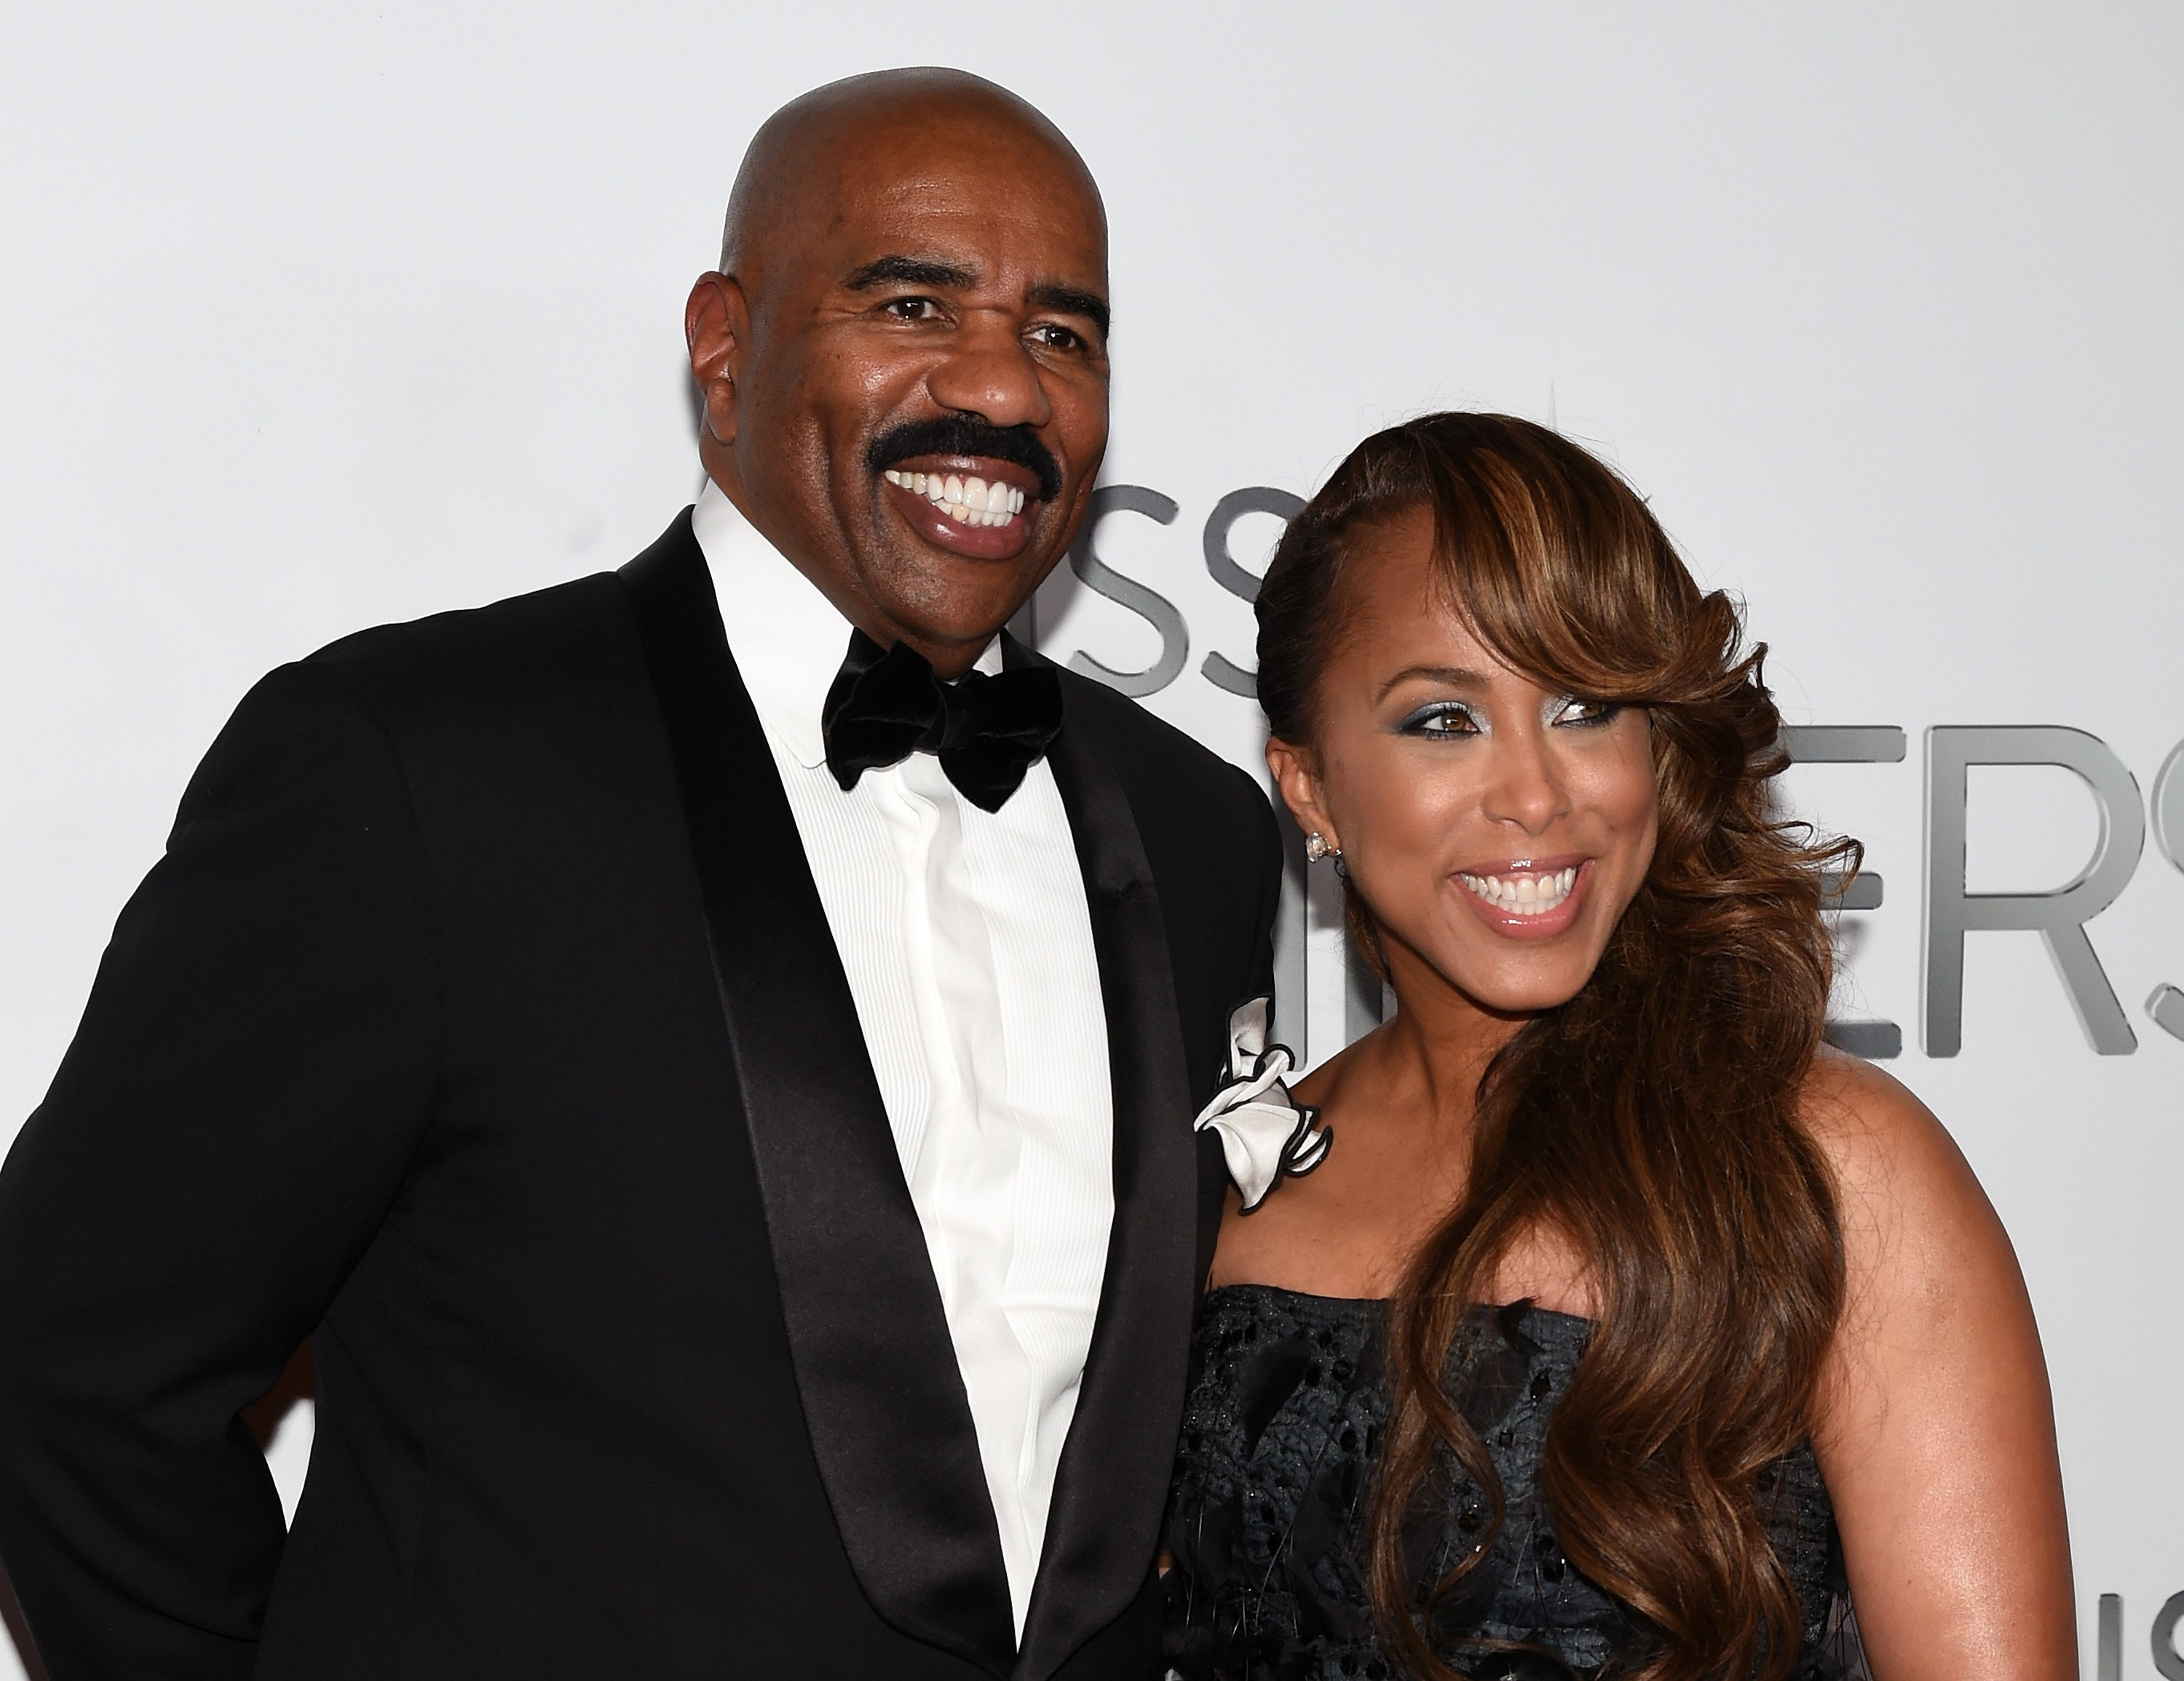 Steve and Marjorie Harvey attend the Miss Universe Pageant in Las Vegas, Nevada on December 20, 2015 | Photo: Getty Images